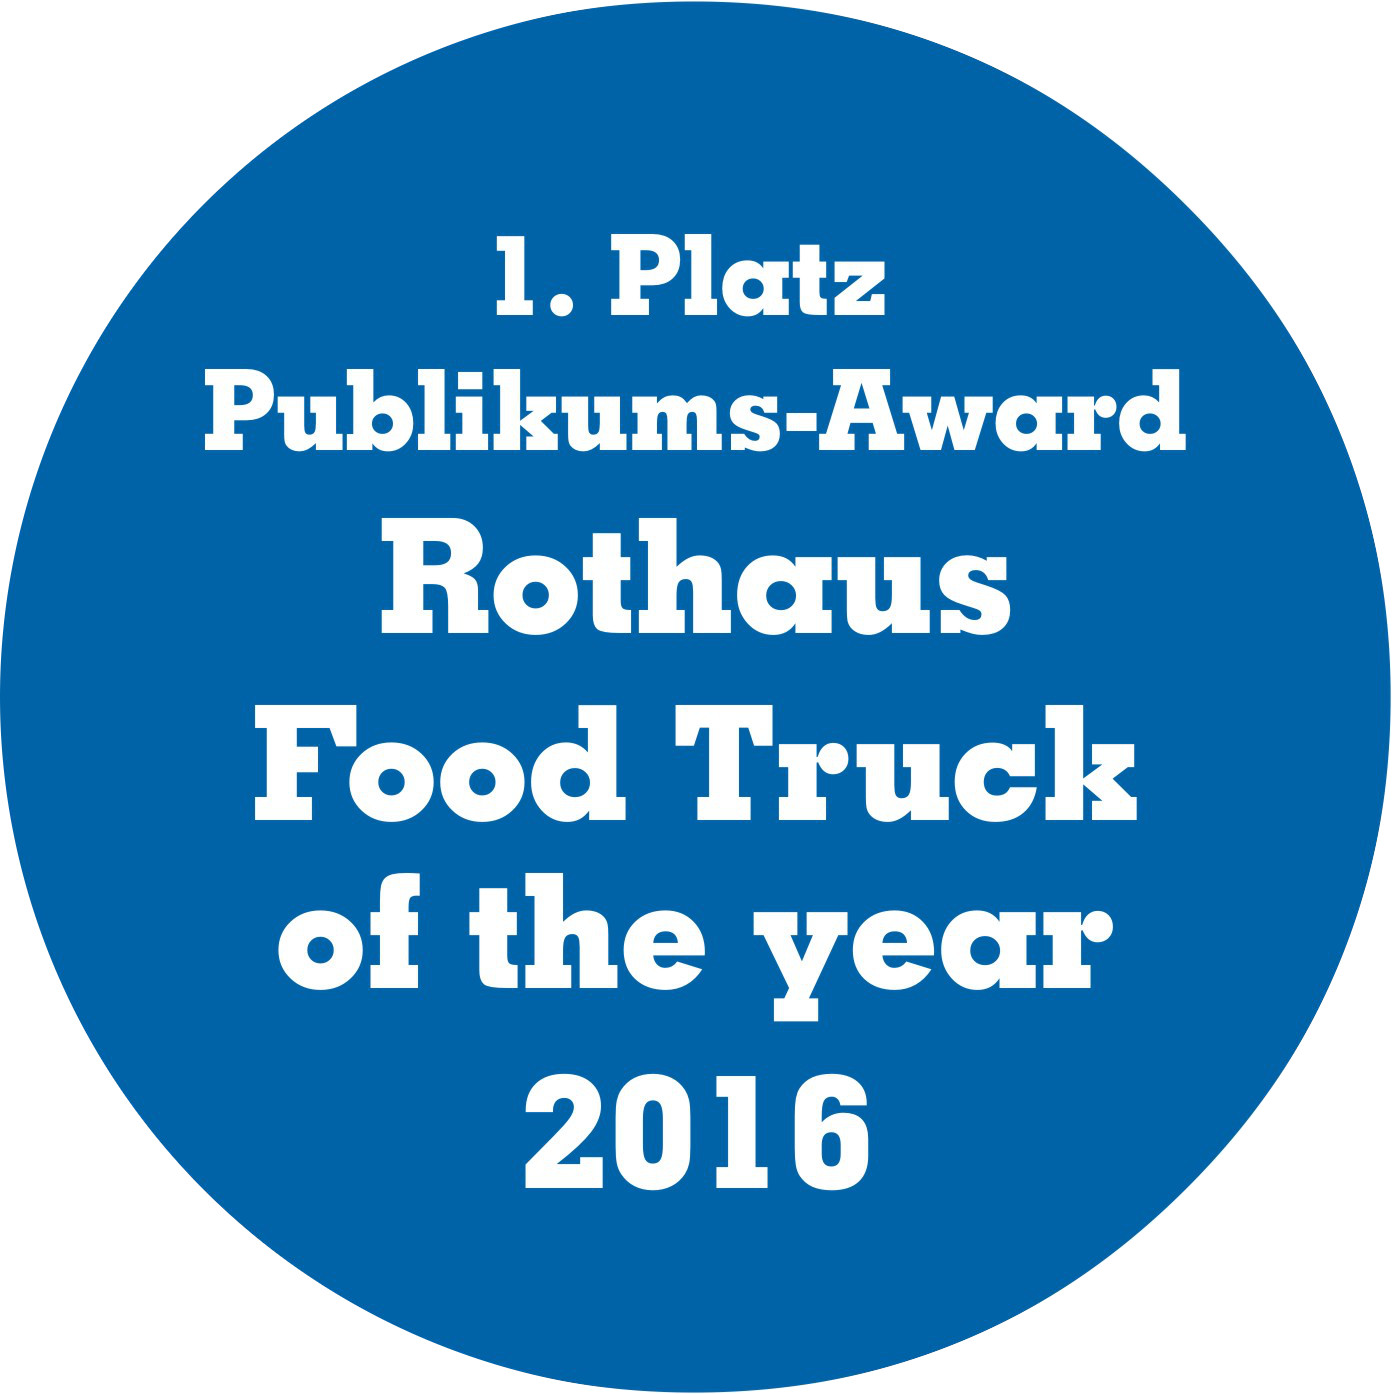 1. Platz Publikums Award Rothaus Foodtruck of the Year